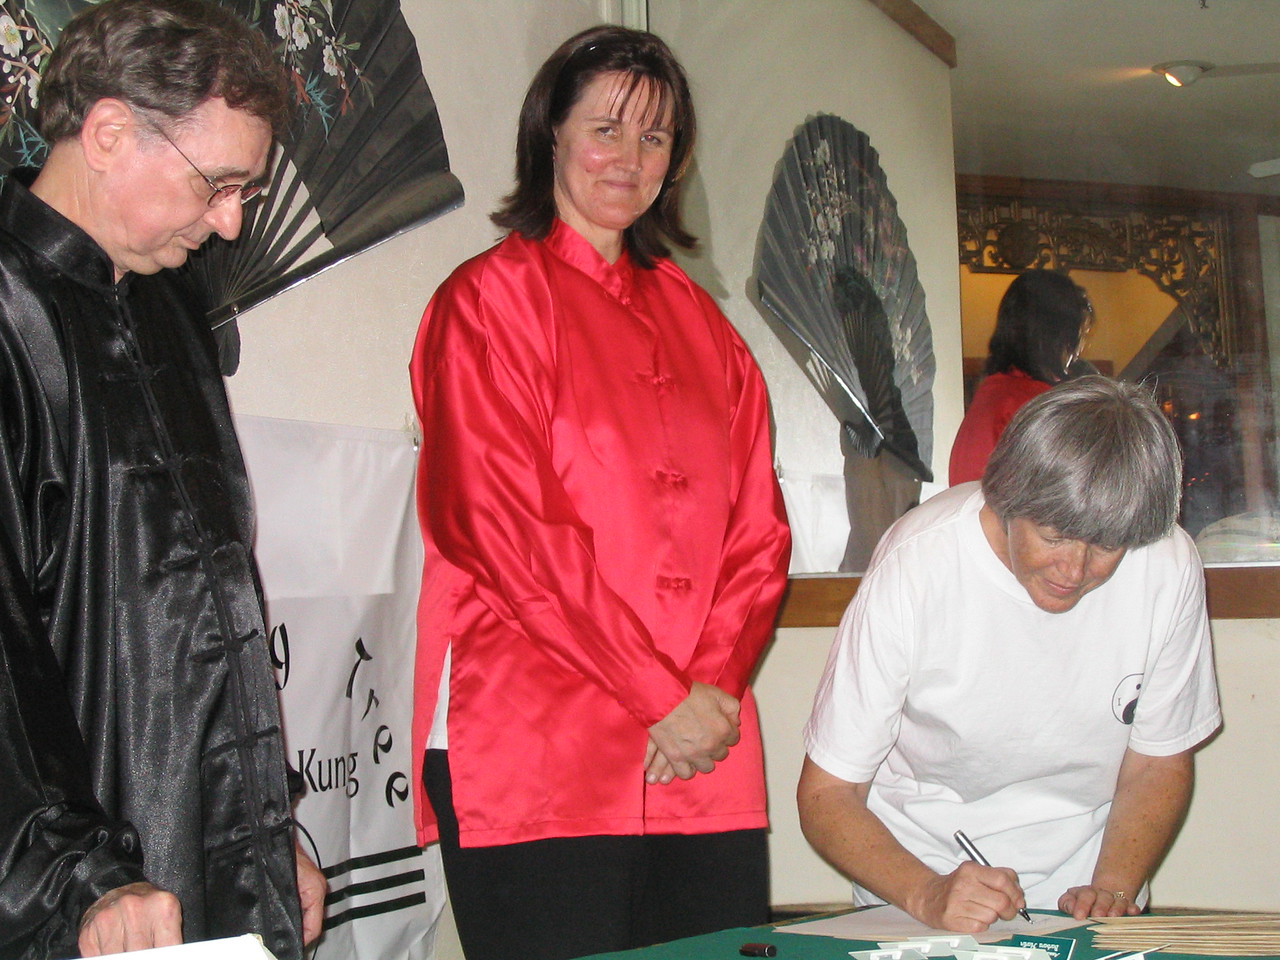 Instructor and Founder of Bending Tree Tai Chi (red), Judith Forsyth smiles as Bonnie Osborn signs her Chinese symbol during her signing ceremony.  Instructor Phillip Szpiech waits to stamp her hand with her chosen symbol.